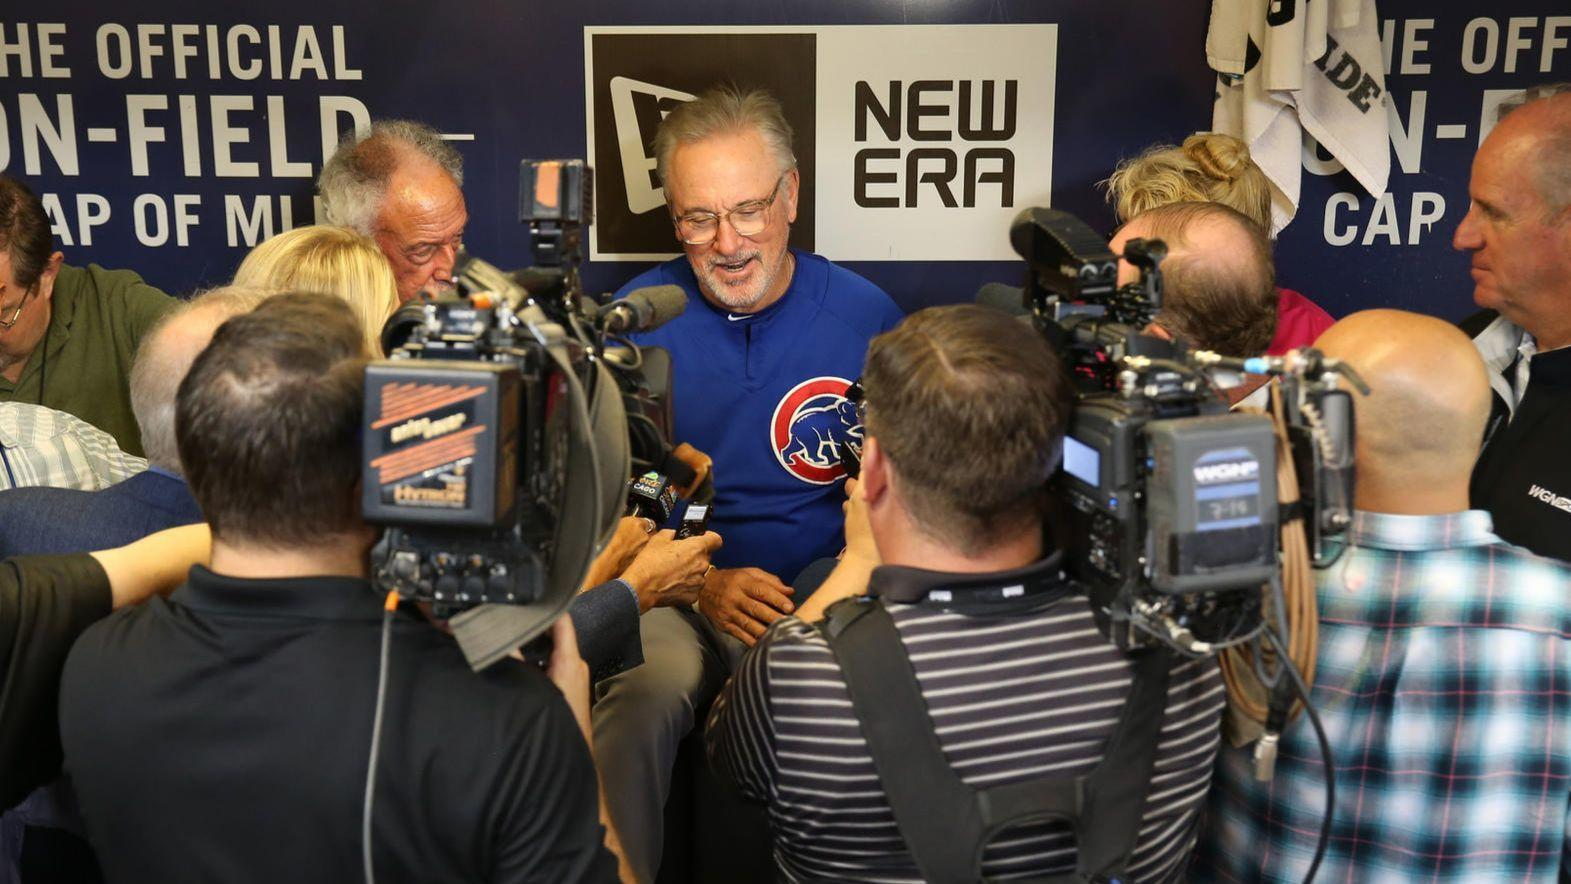 Joe Maddon's agent rips media speculation on Cubs manager's future: 'You guys fired everything up'